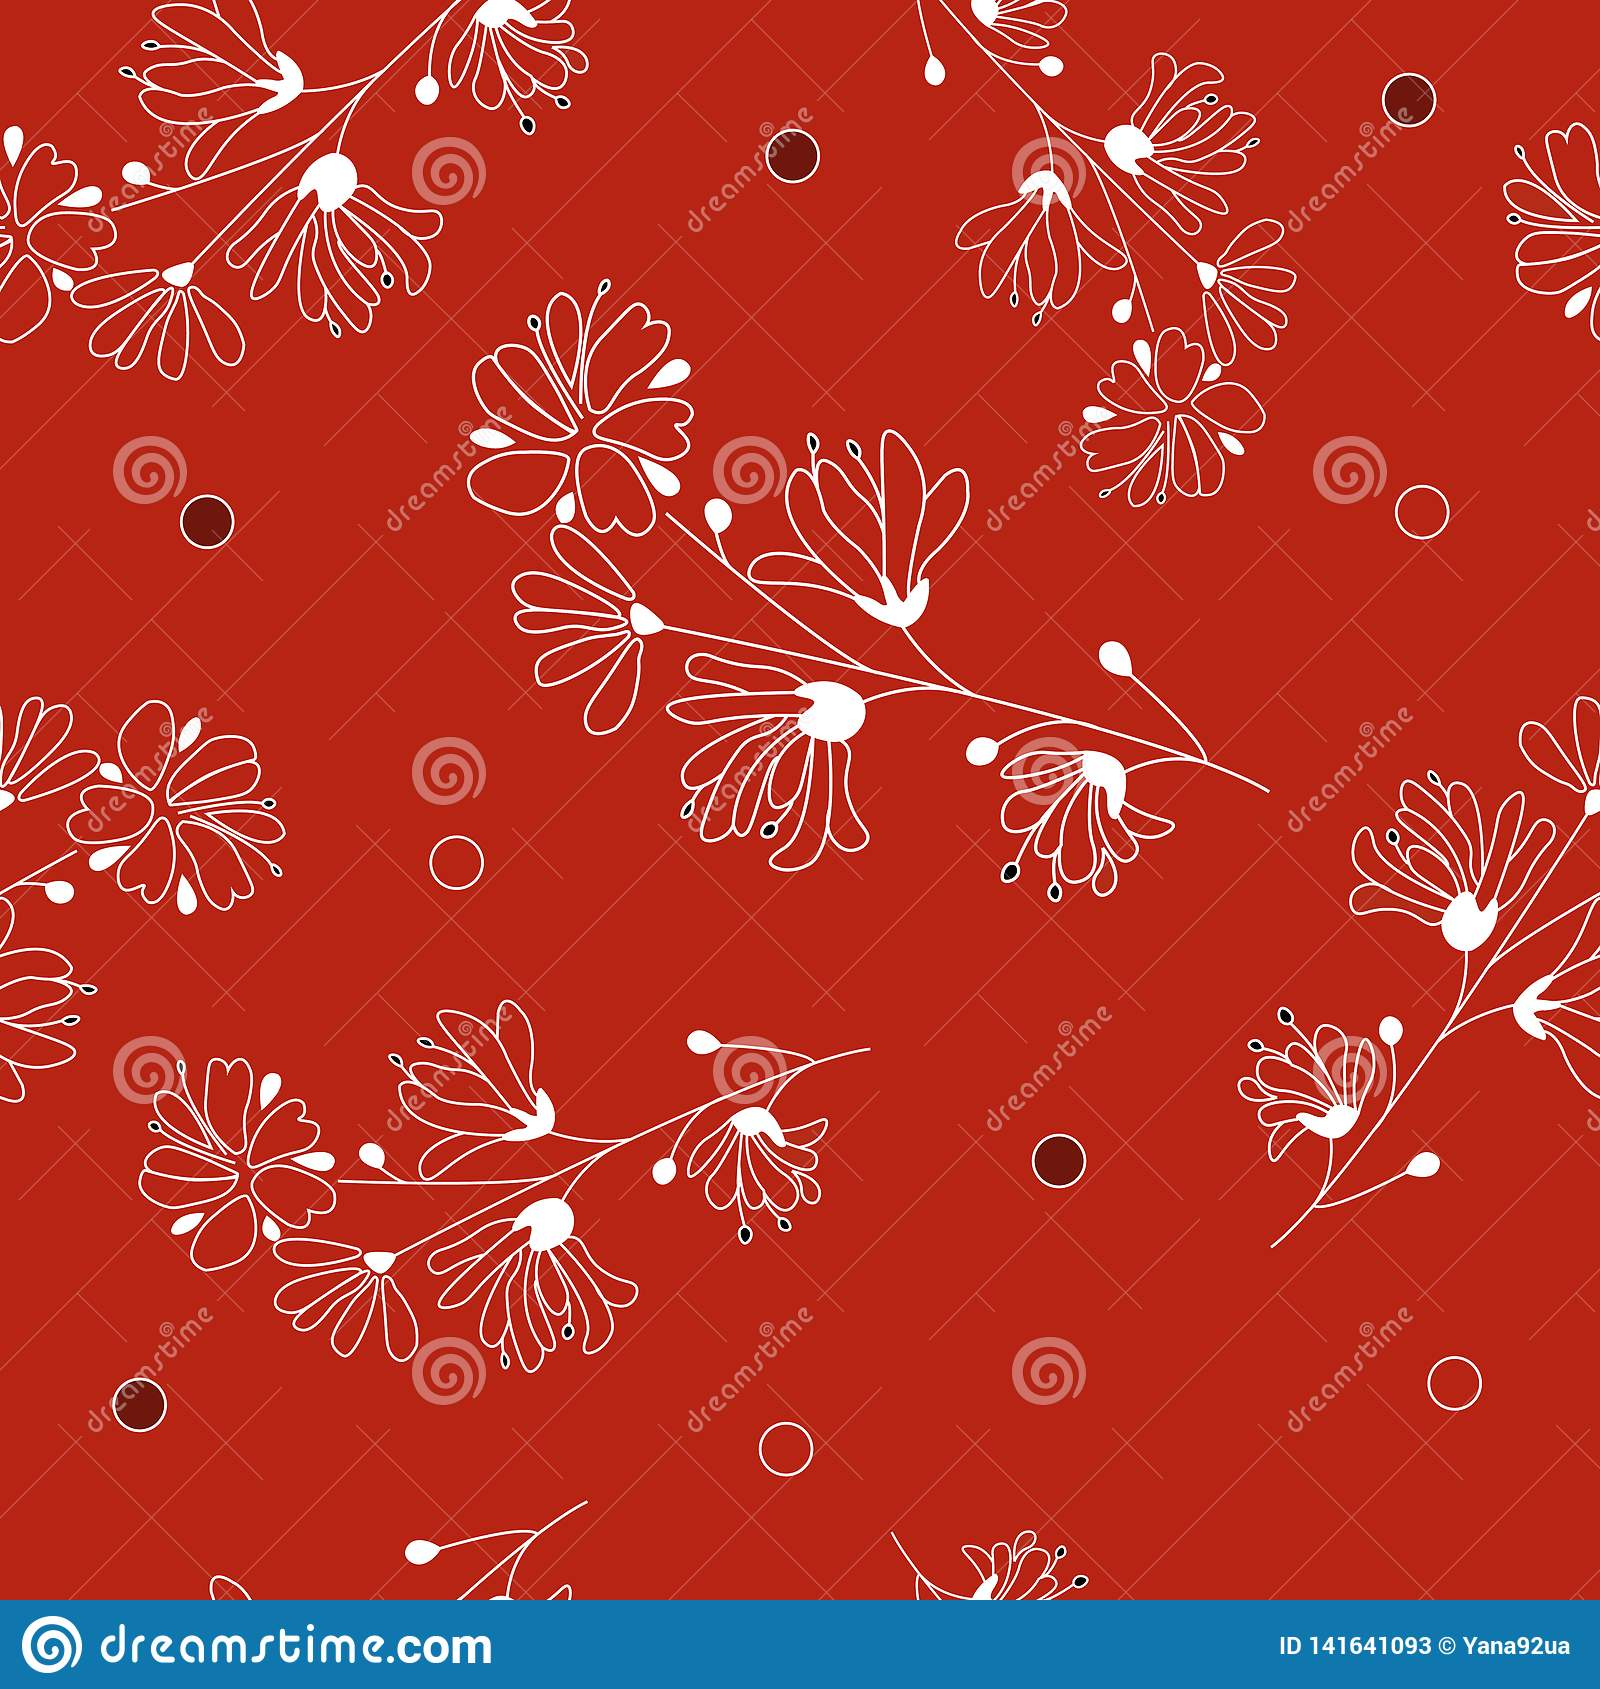 Hand drawn seamless vector pattern with white flowers. Red floral background.